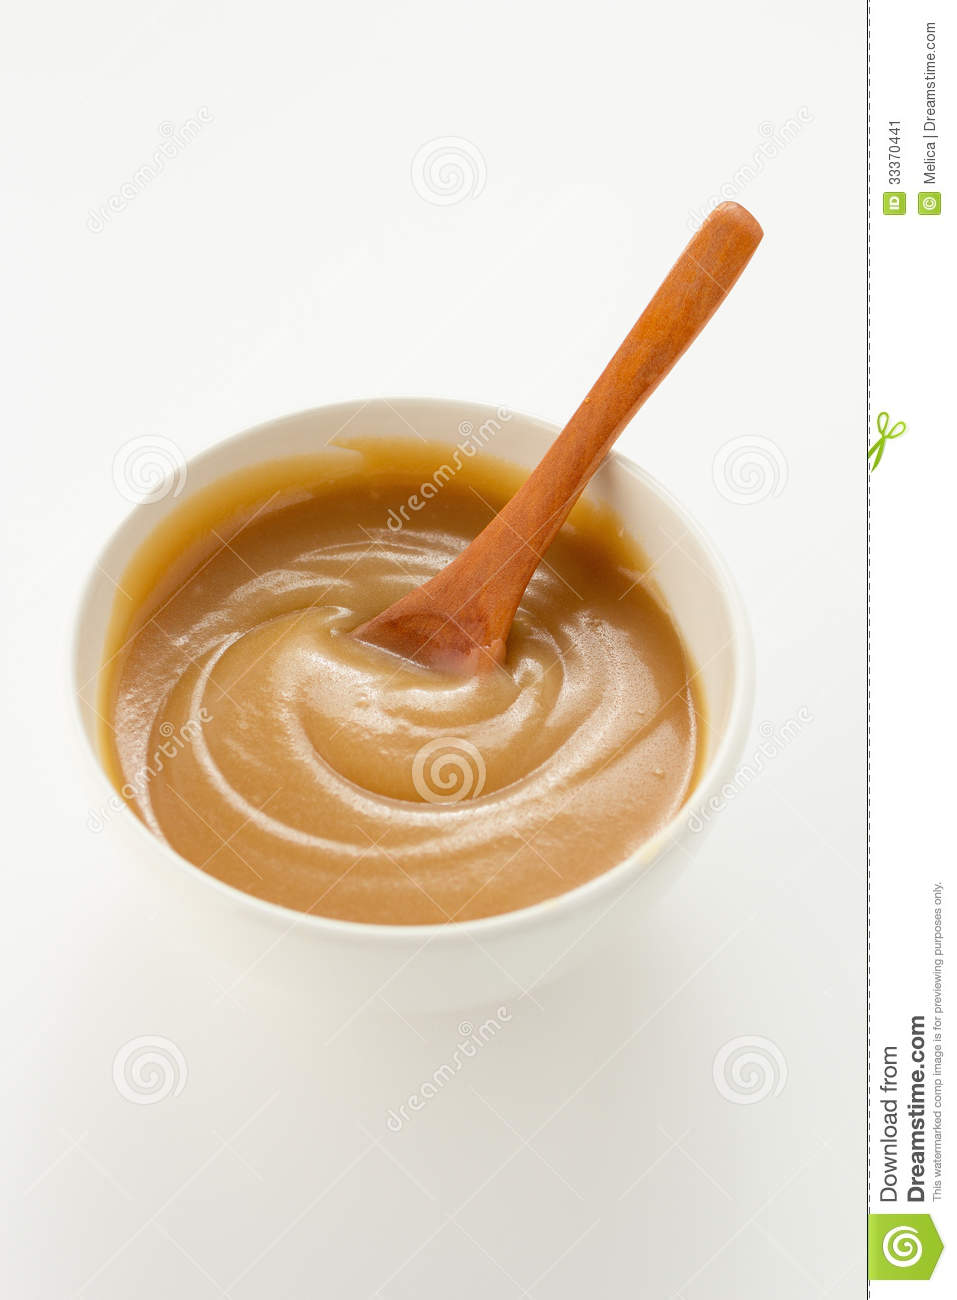 Is Caramel Color A Natural Ingredient